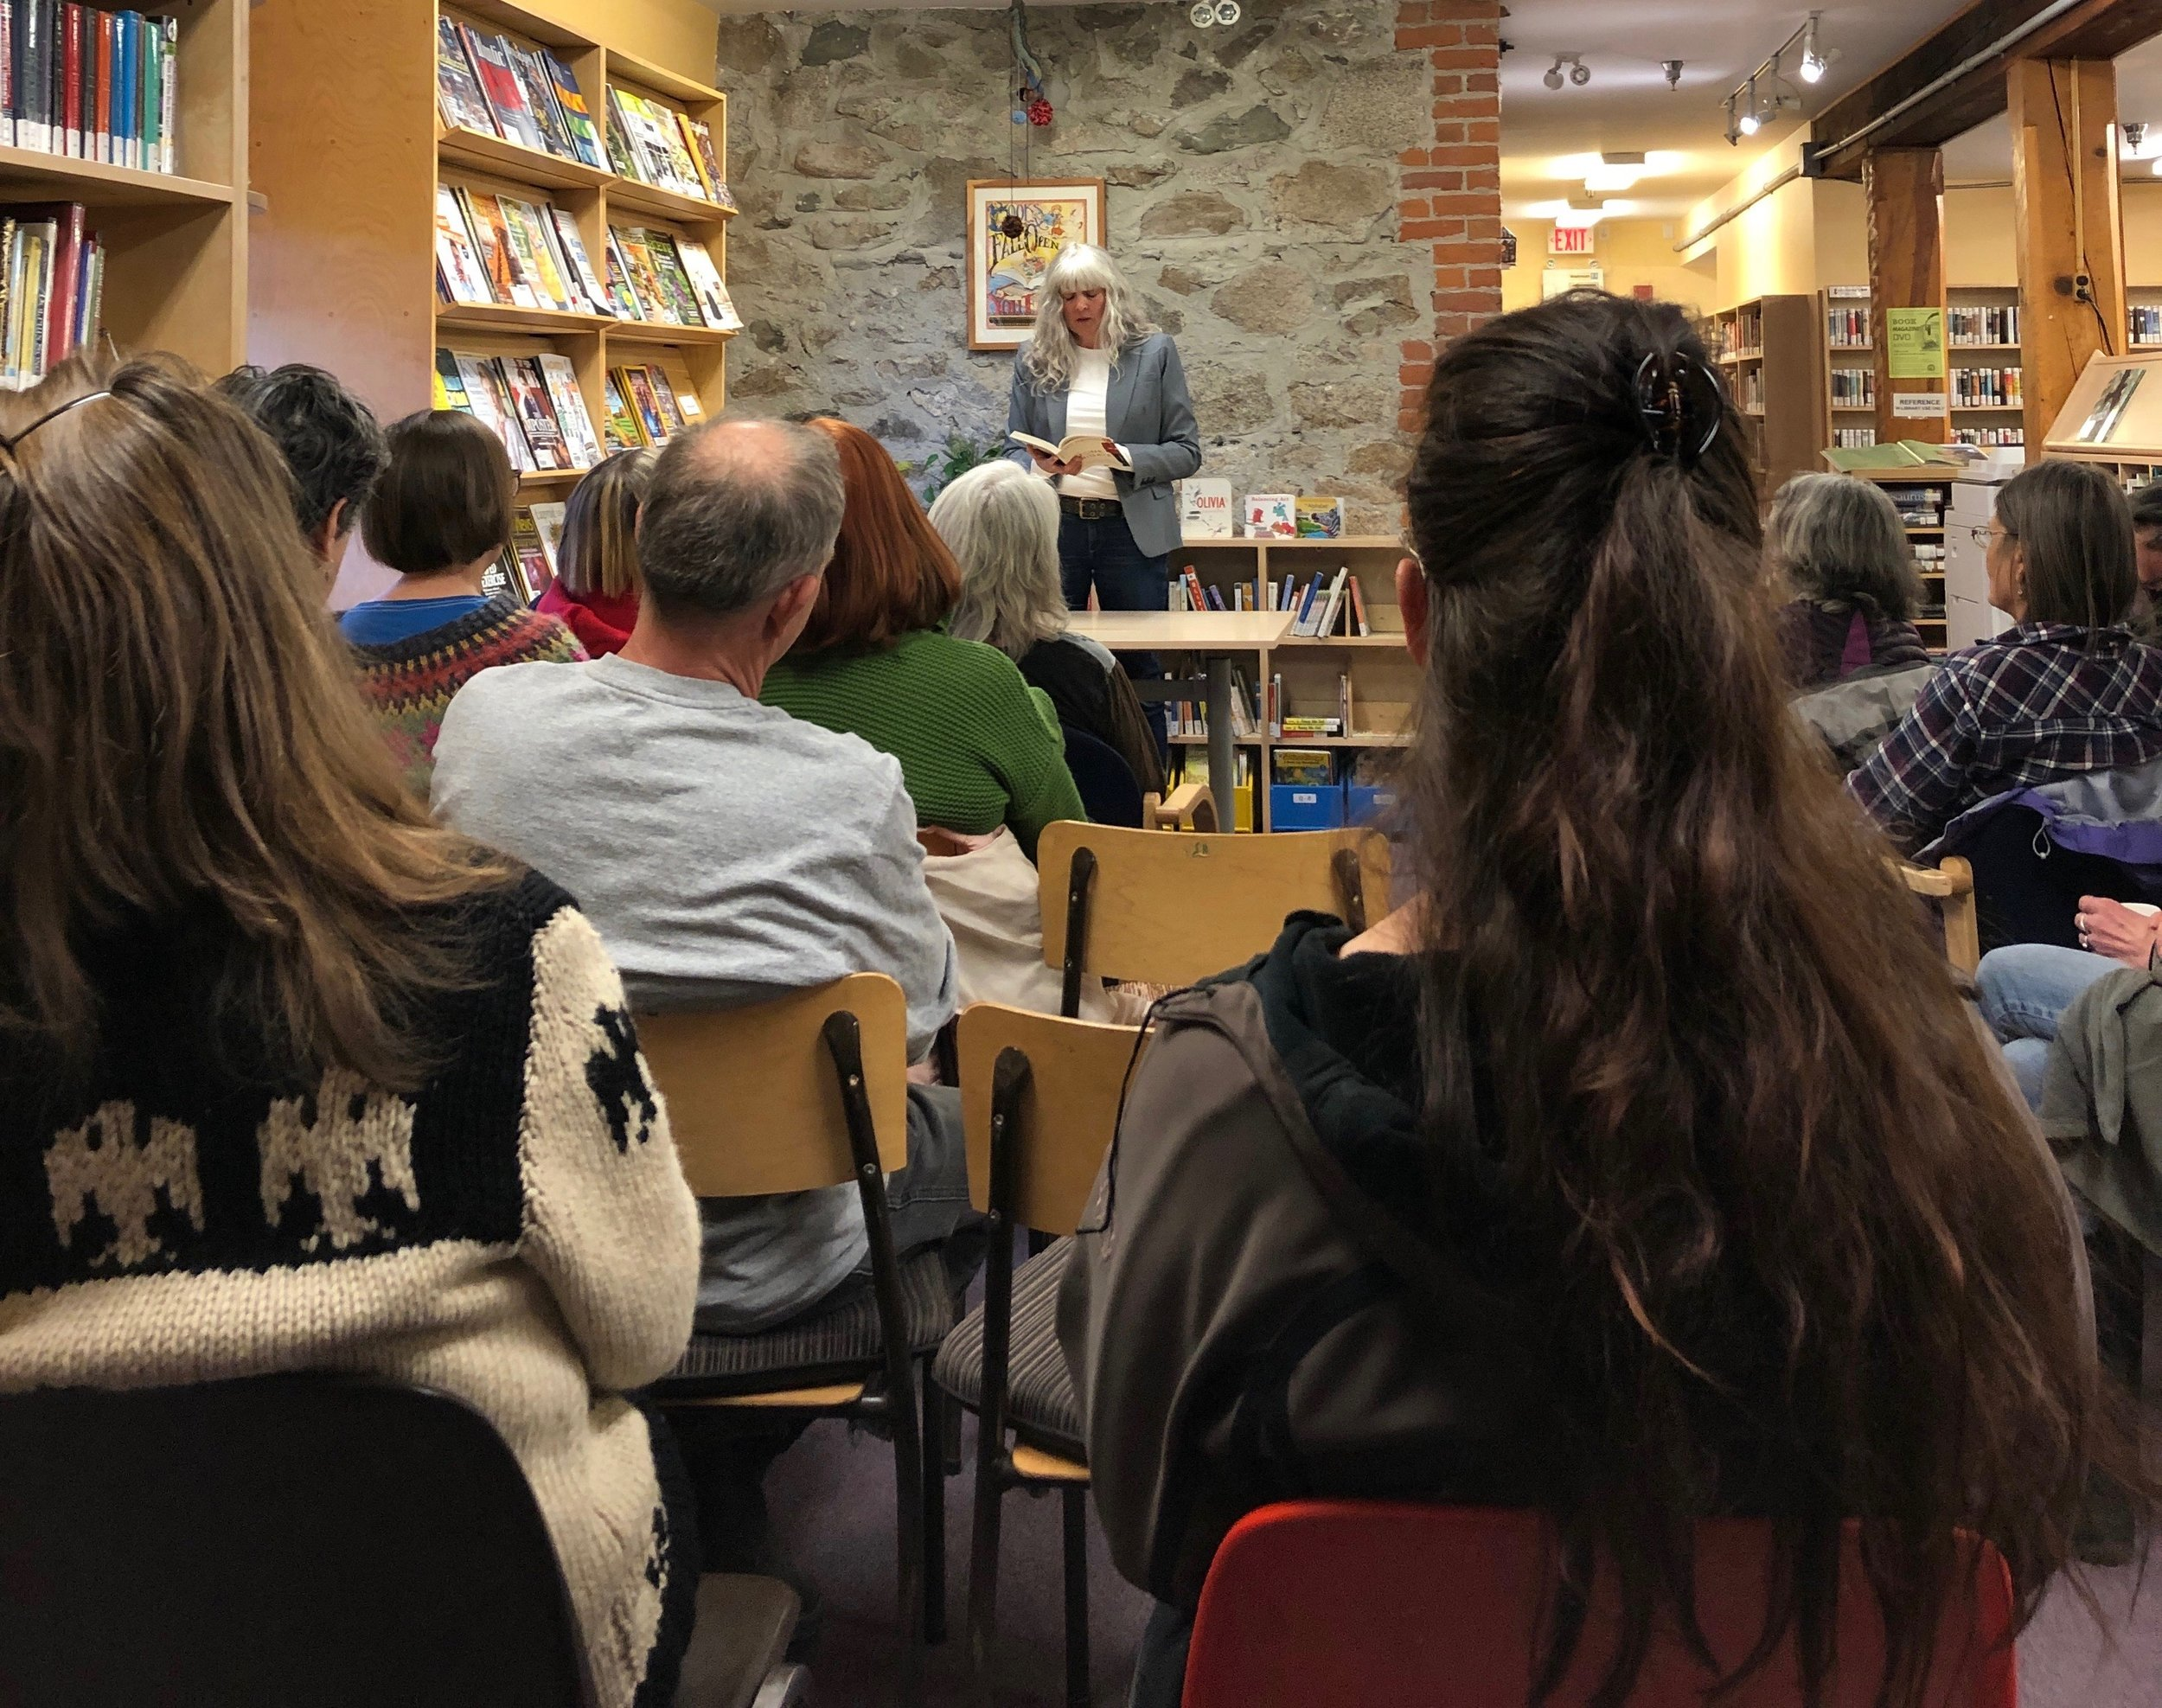 After speaking about The Stone Frigate and what the book means to me, I did a short reading before answering questions. The Kaslo crowd was lively, full of insights, and even shared a few stories of their own. Thank you everyone for participating! Thank you to the Kaslo & District Public Library, especially Angela Bennett, for inviting me to share an evening in your amazing space.